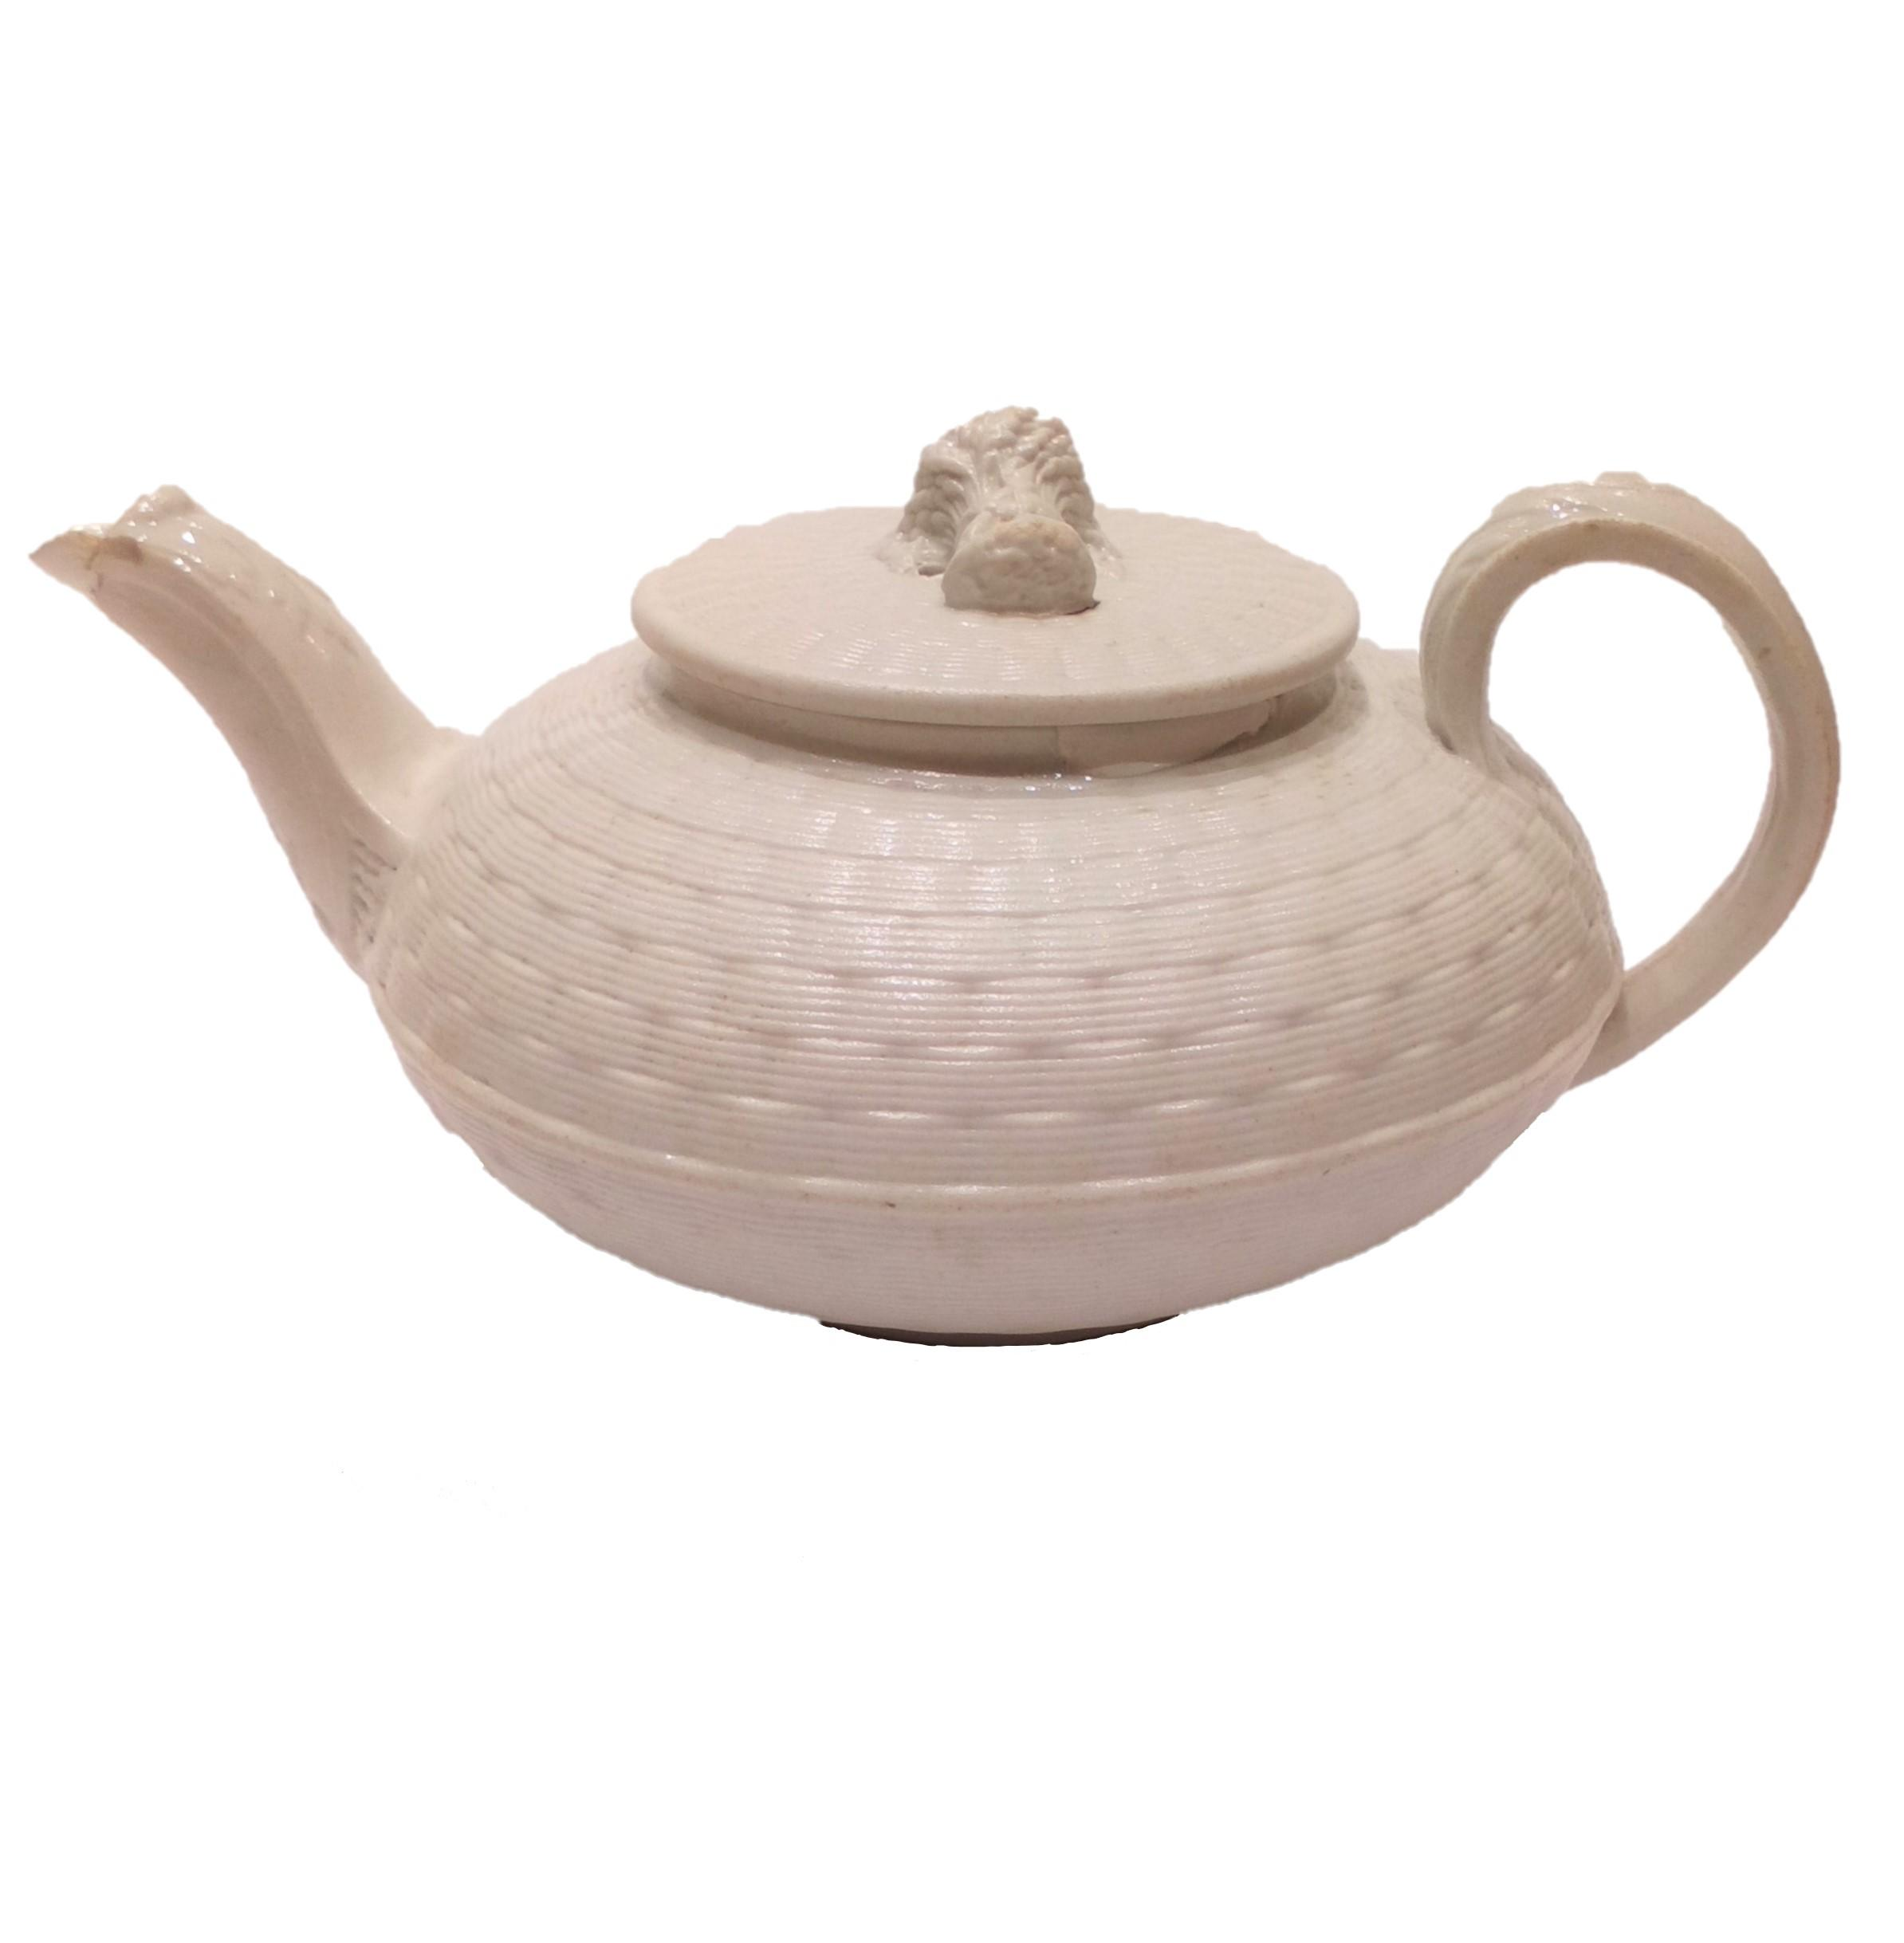 An antique Wedgwood white salt glazed stoneware teapot basket weave pattern with Wheat Sheaf finial circa 1825